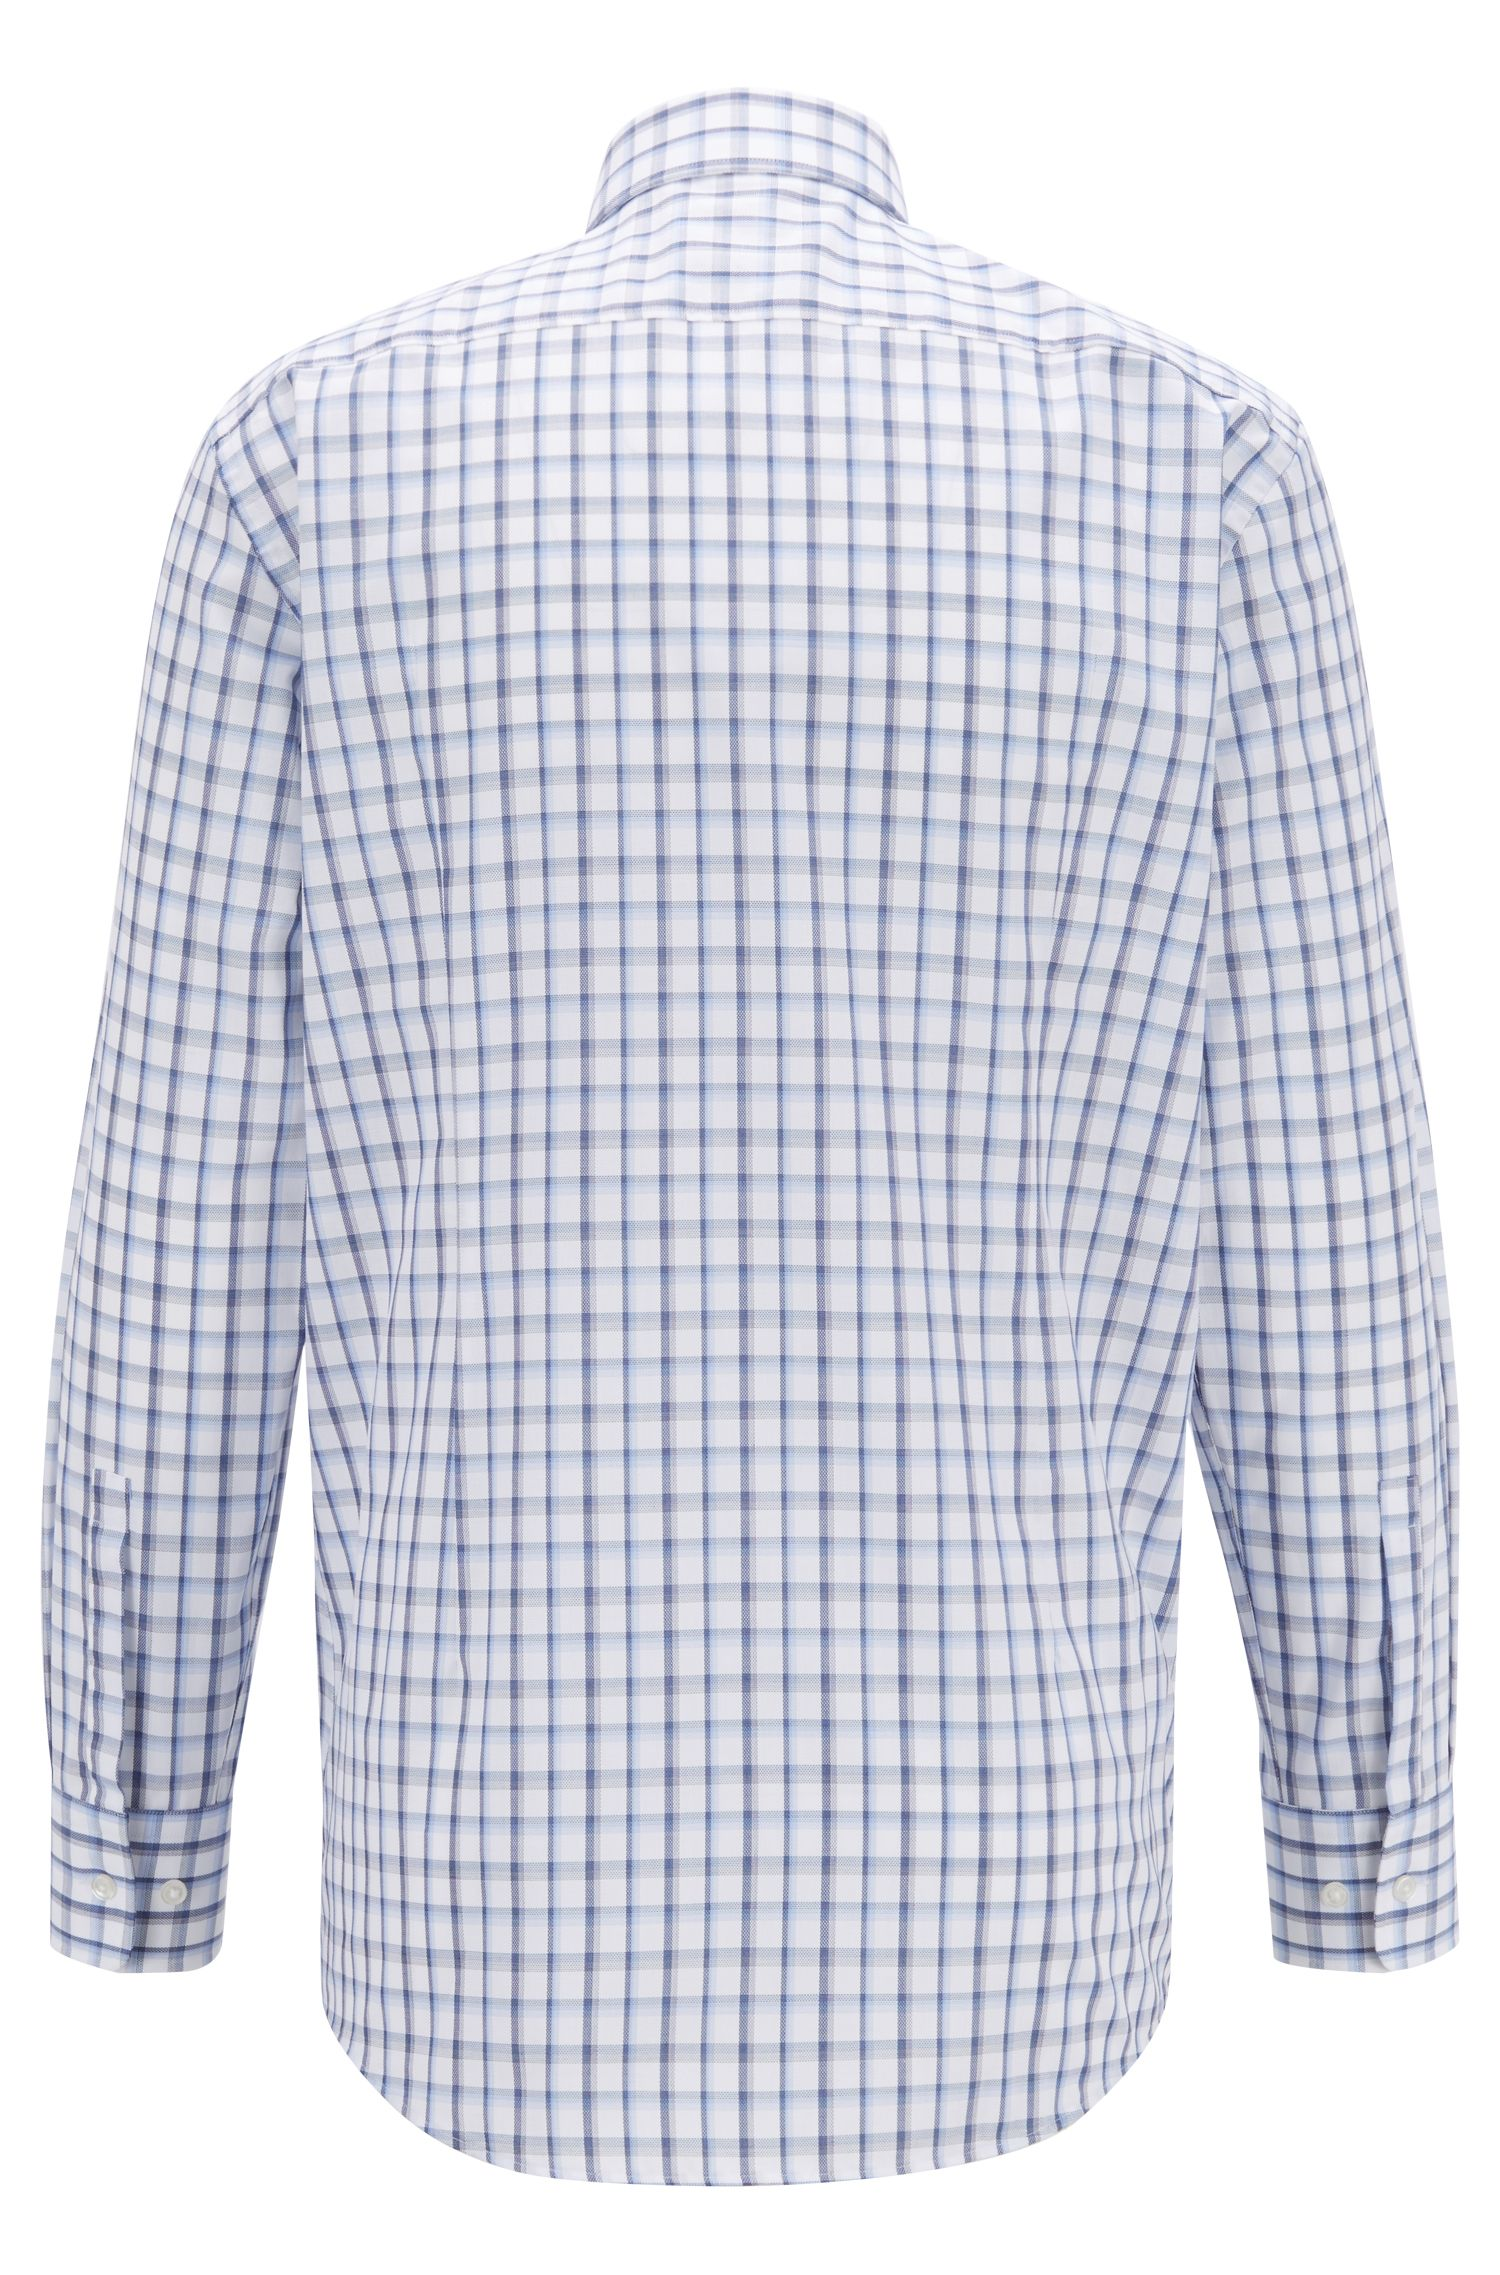 Sharp-fit shirt in Oxford cotton with Vichy check, Blue